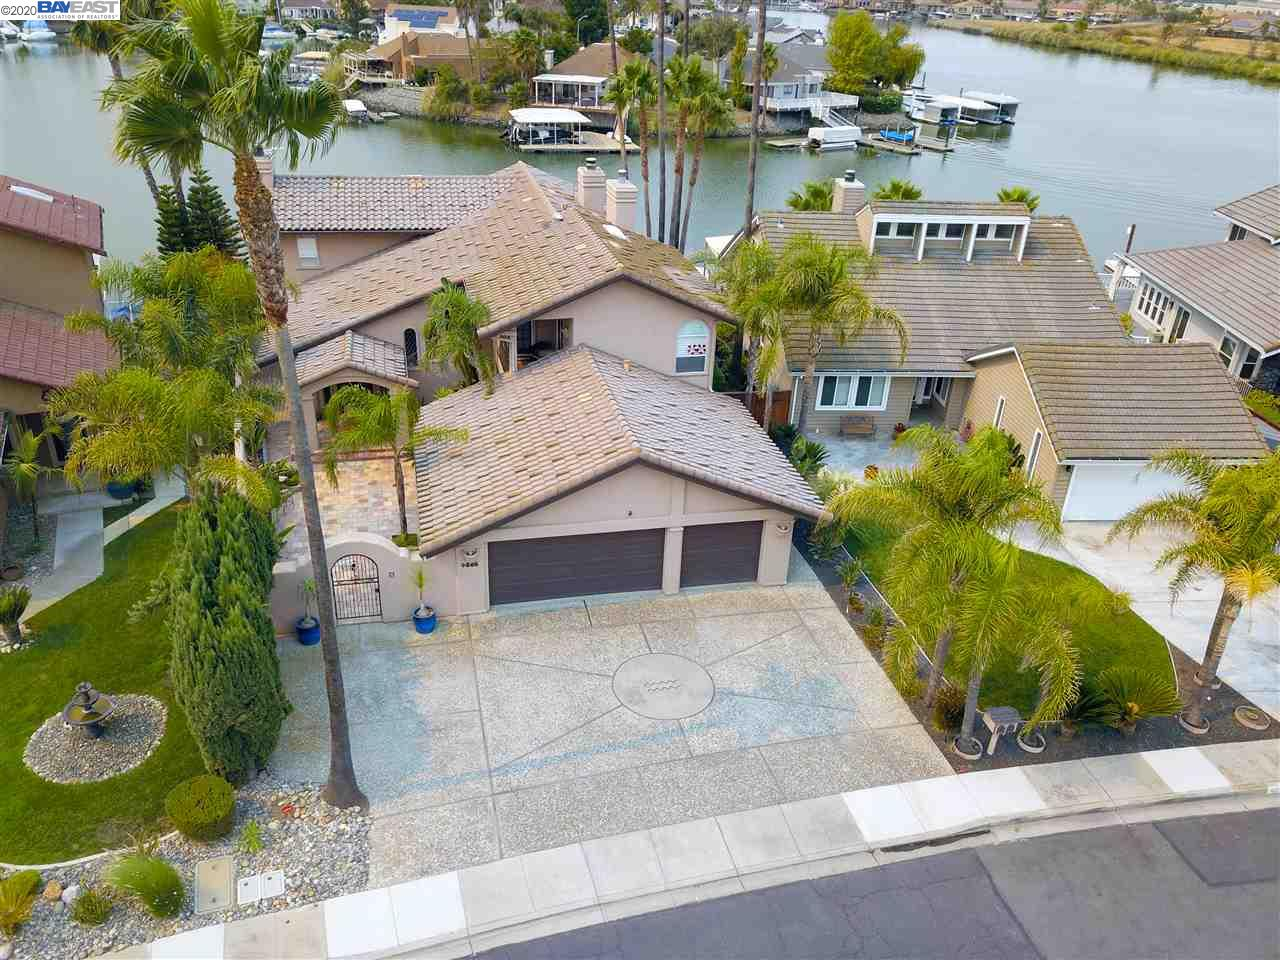 4886 South Pt, DISCOVERY BAY, CA 94505